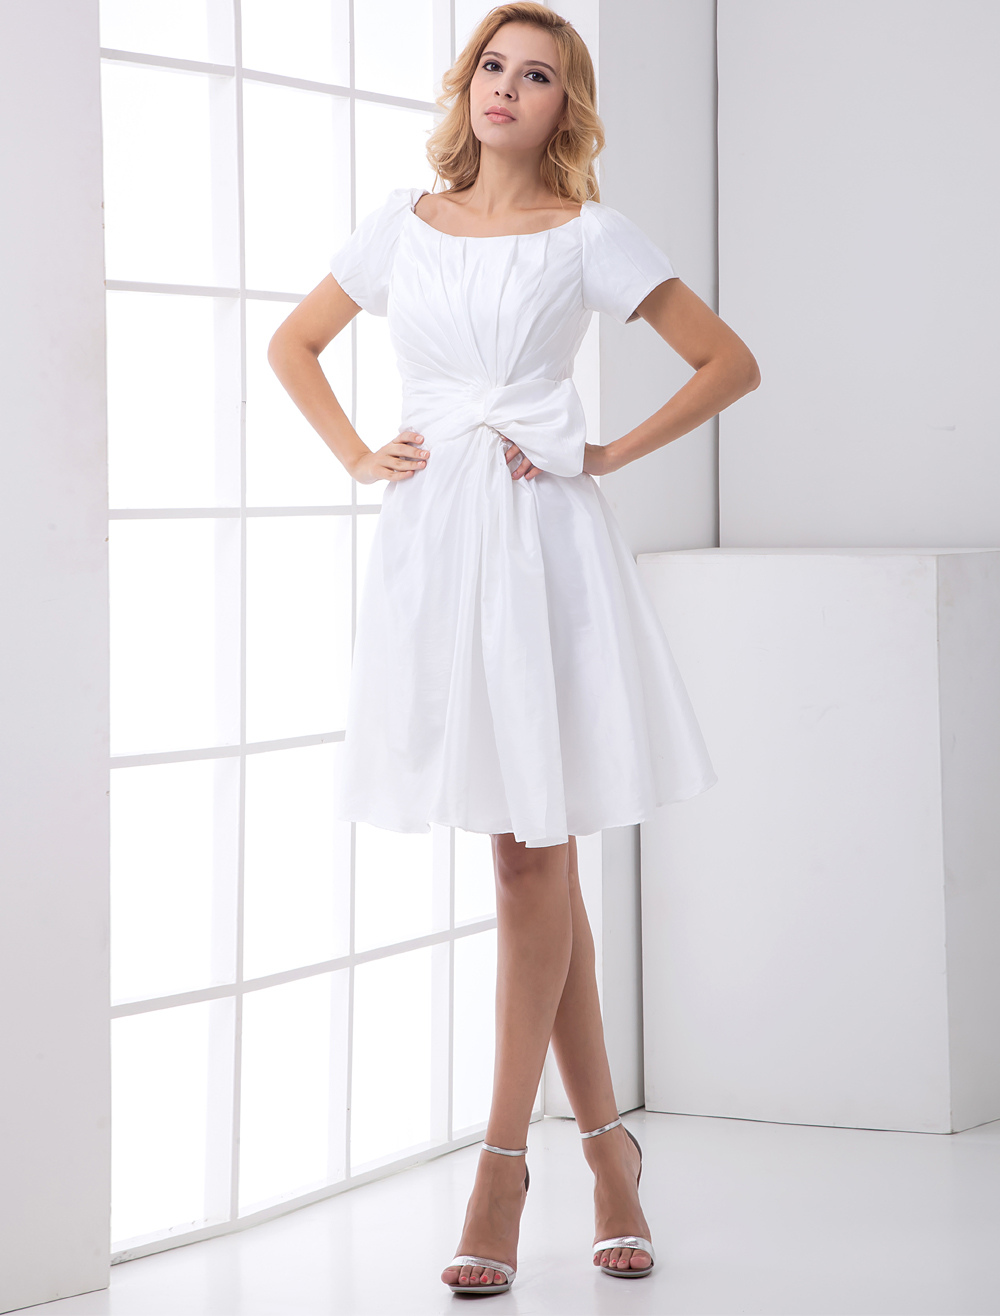 White A-line Modern Knee-Length Cocktail Dress with Square Neck Bow (Wedding Cheap Party Dress) photo